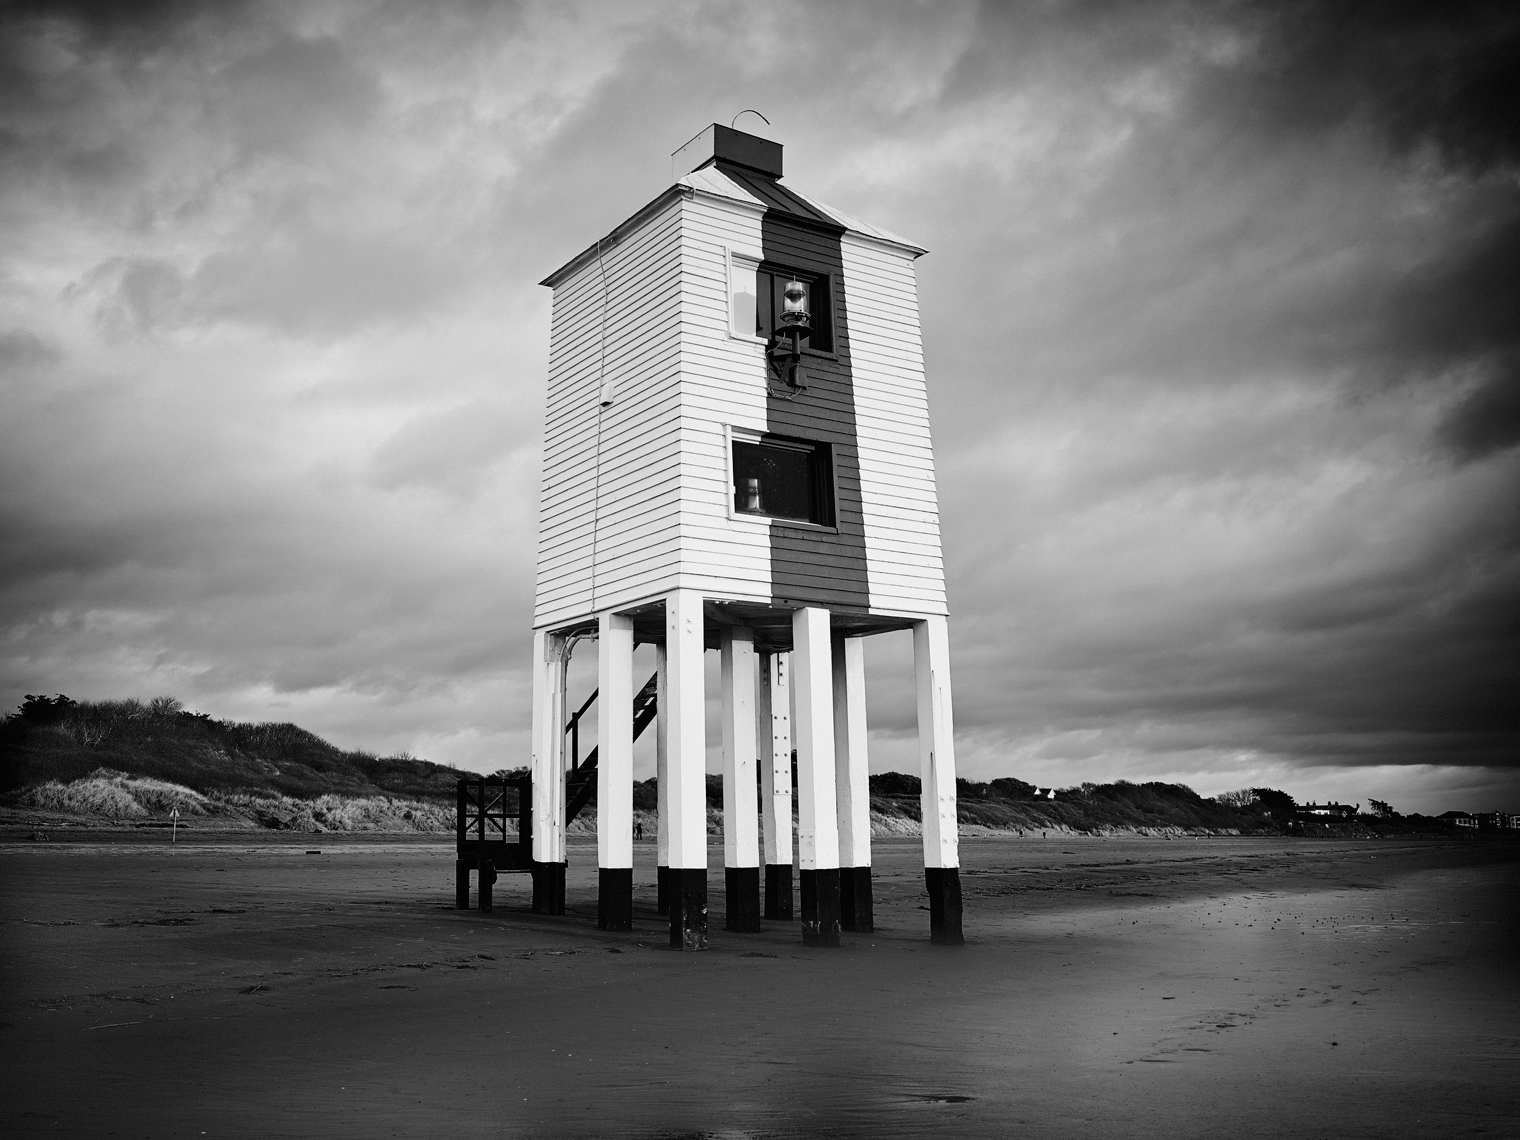 Jon Wyatt Photography - The Low Lighthouse on the beach at Burnham-on-Sea, Somerset